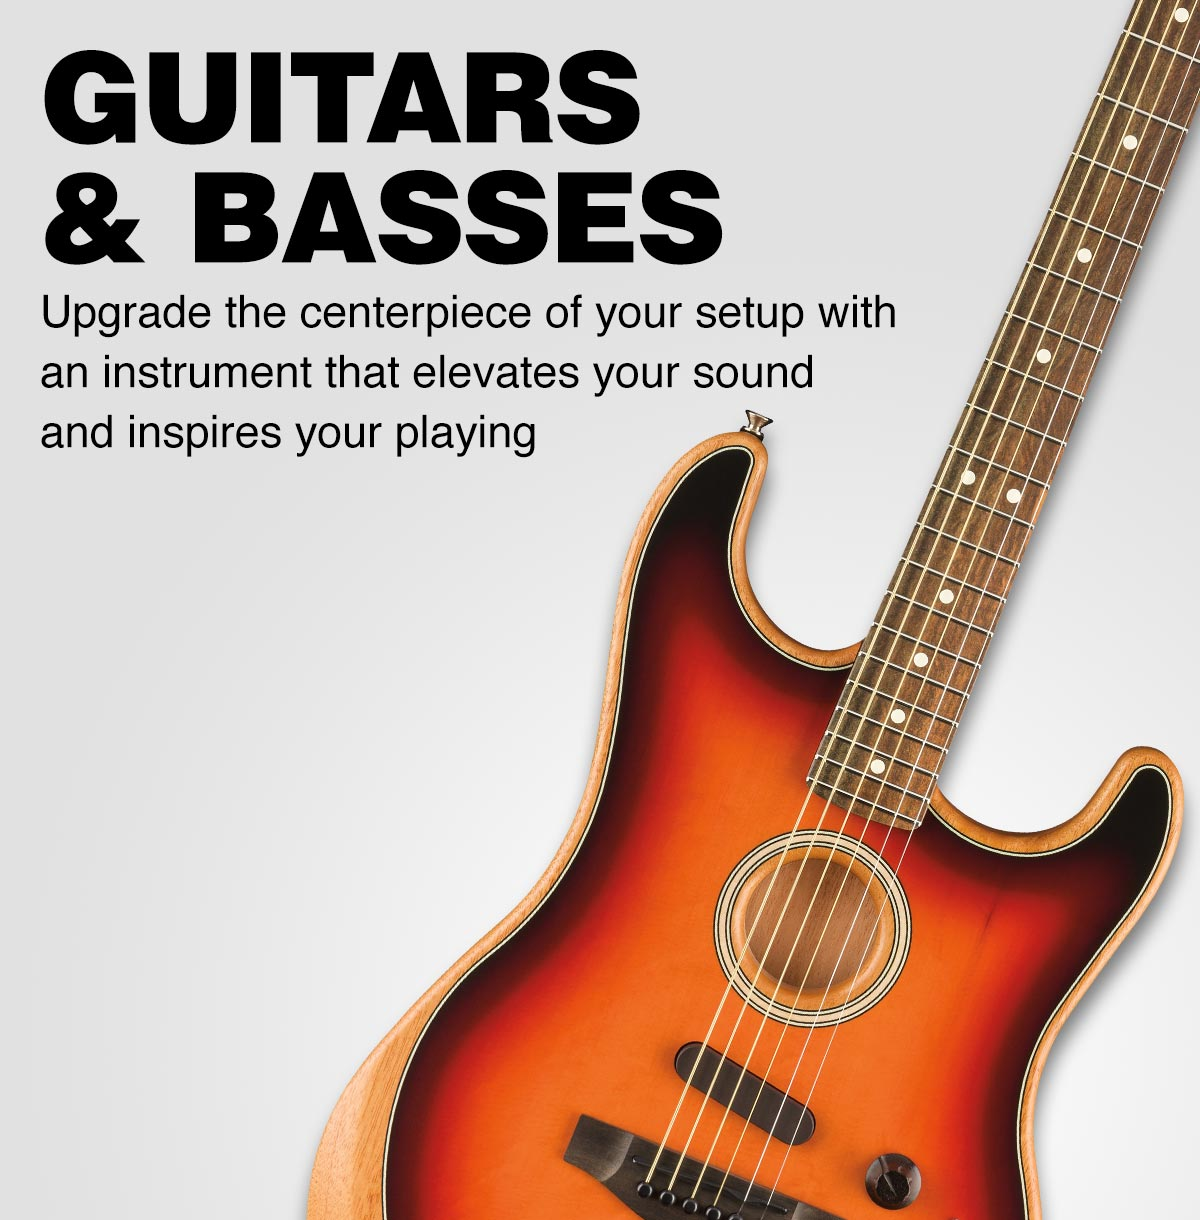 Guitars and Basses. Upgrade the centerpiece of your setup with an instrument that elevates your sound and inspires your playing